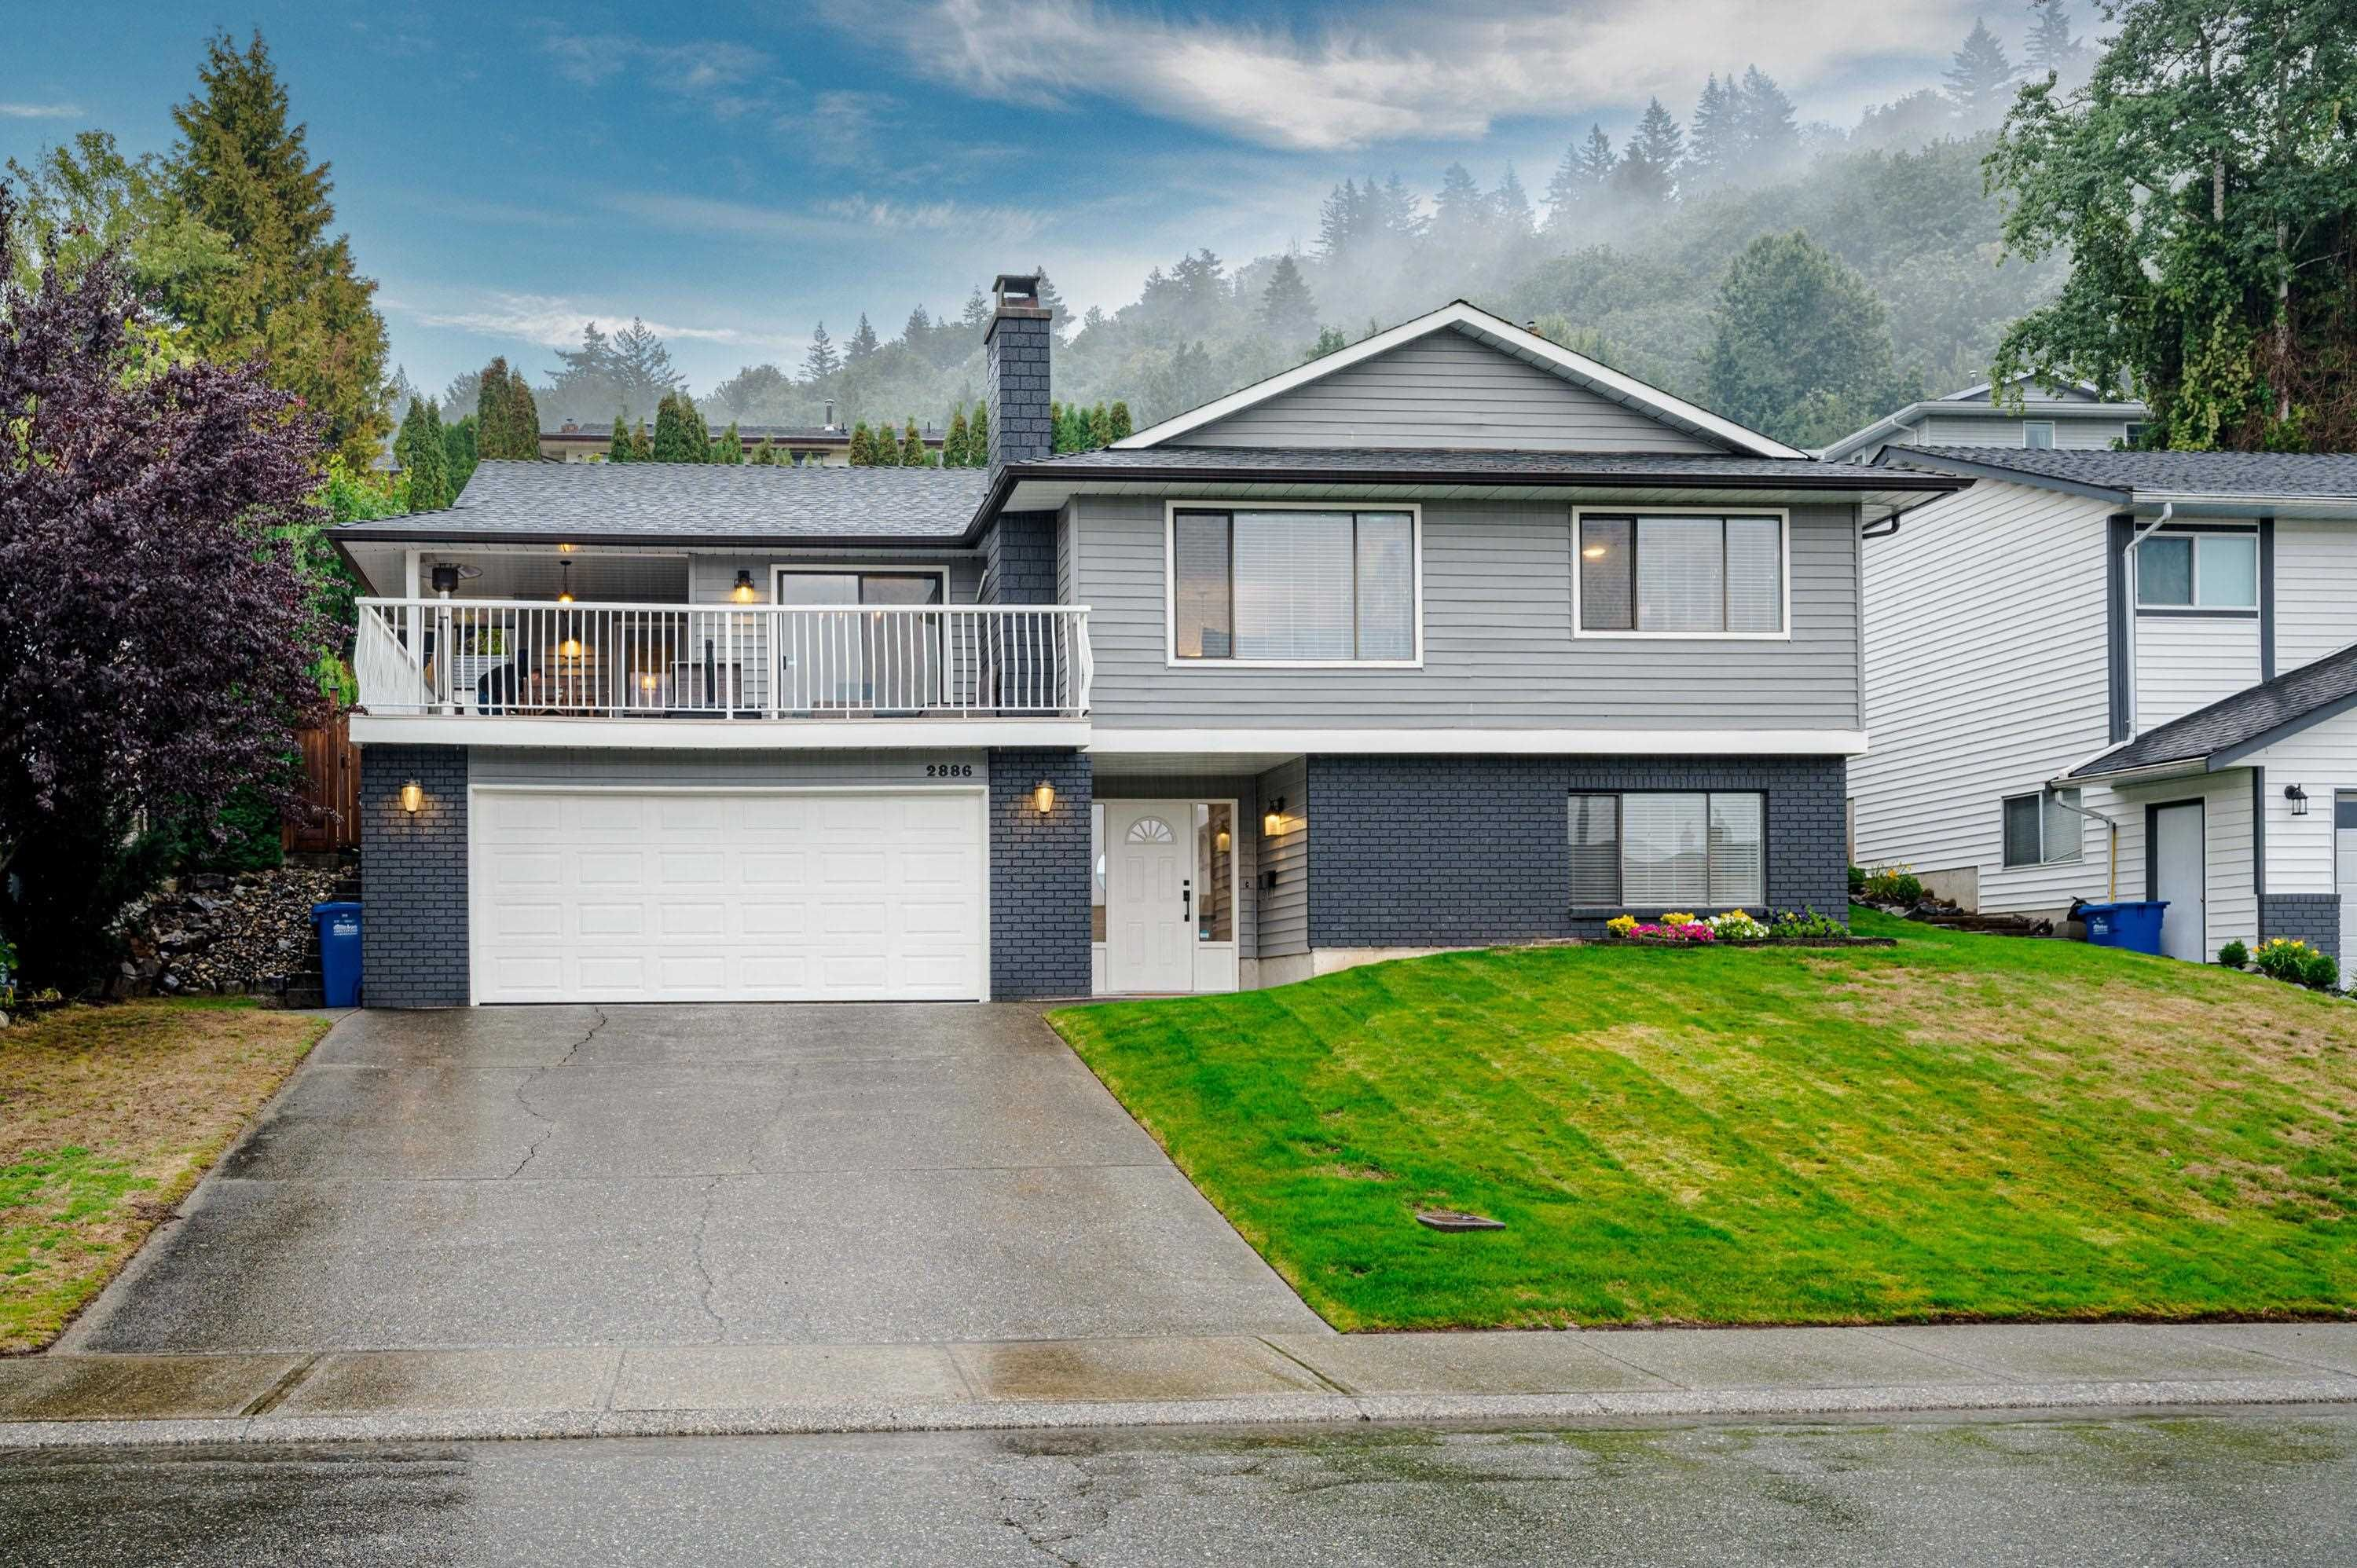 Main Photo: 2886 GLENAVON Street in Abbotsford: Abbotsford East House for sale : MLS®# R2621347